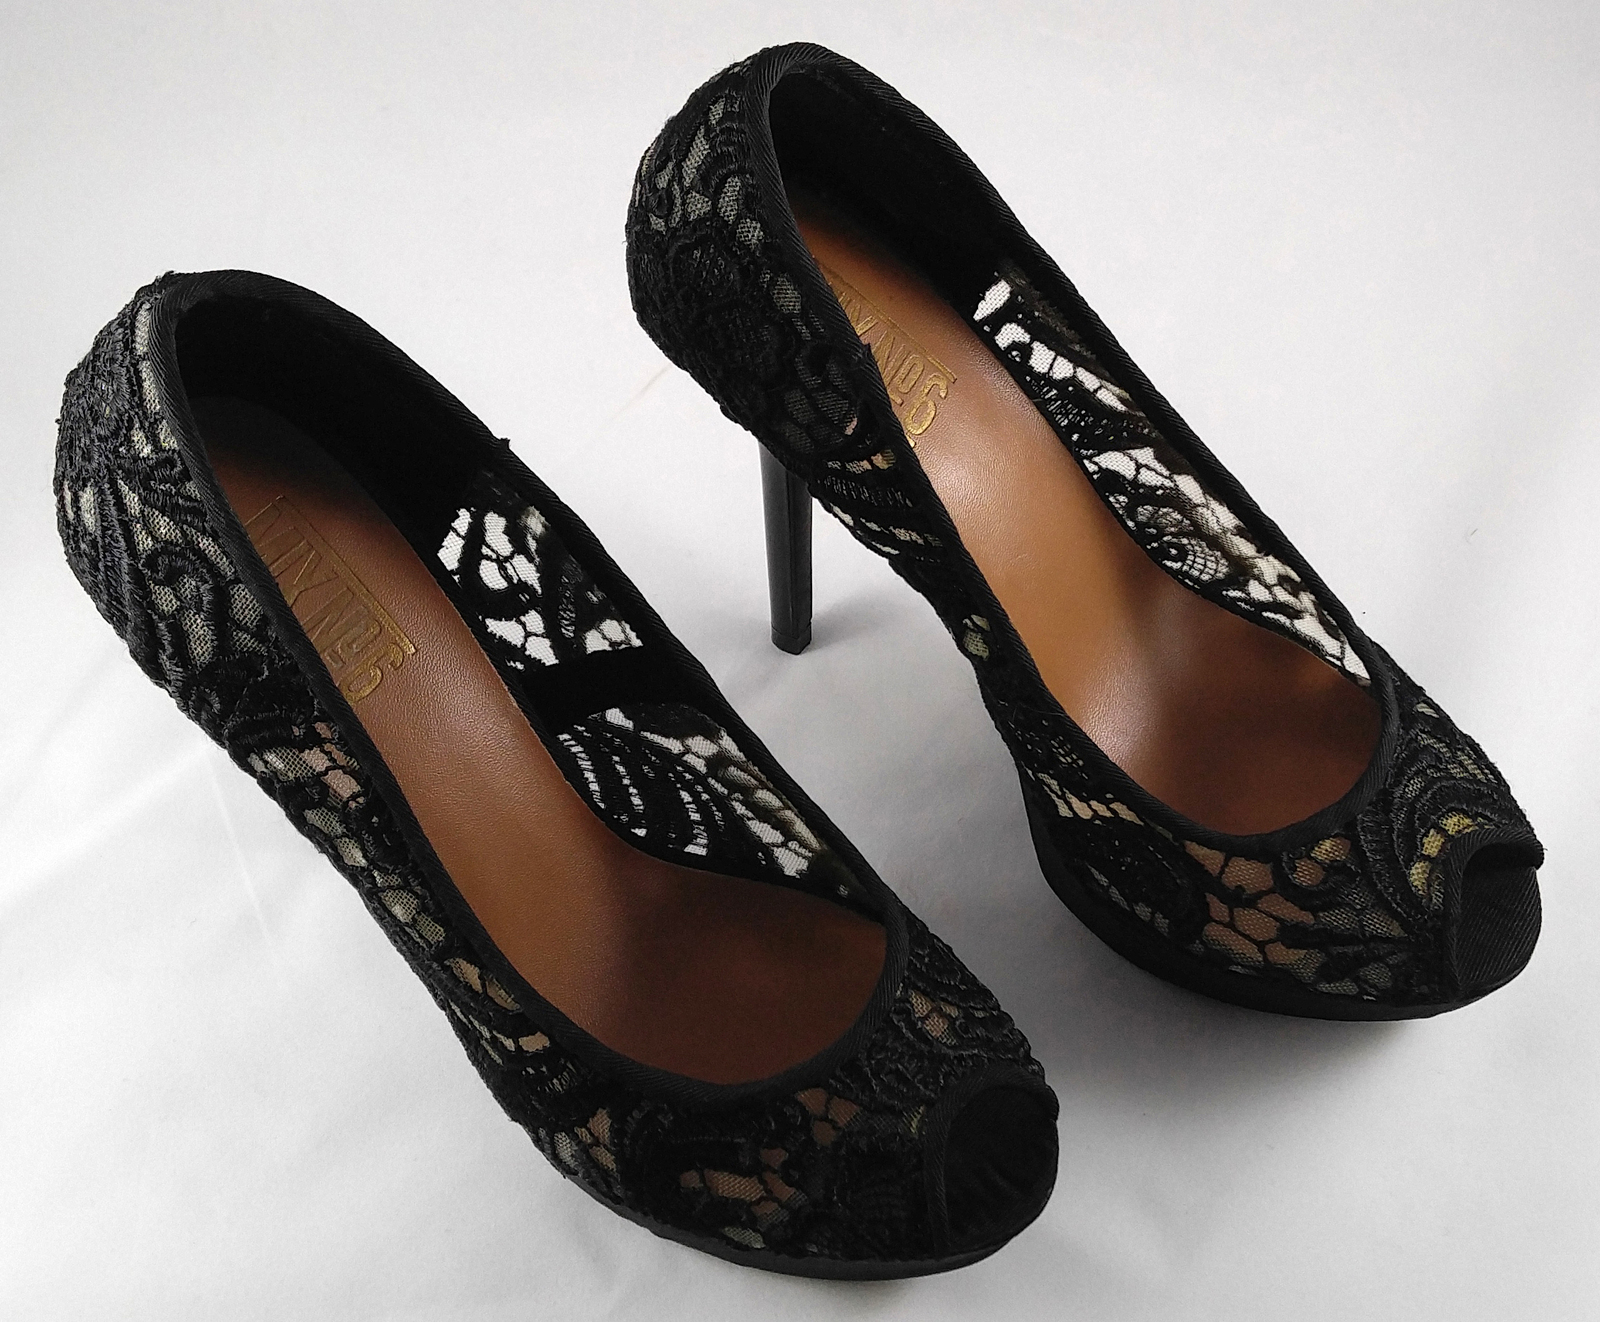 MX No 6 Allure Woman's High Heel Stiletto Shoes Pumps Black Lace Size 6 ½